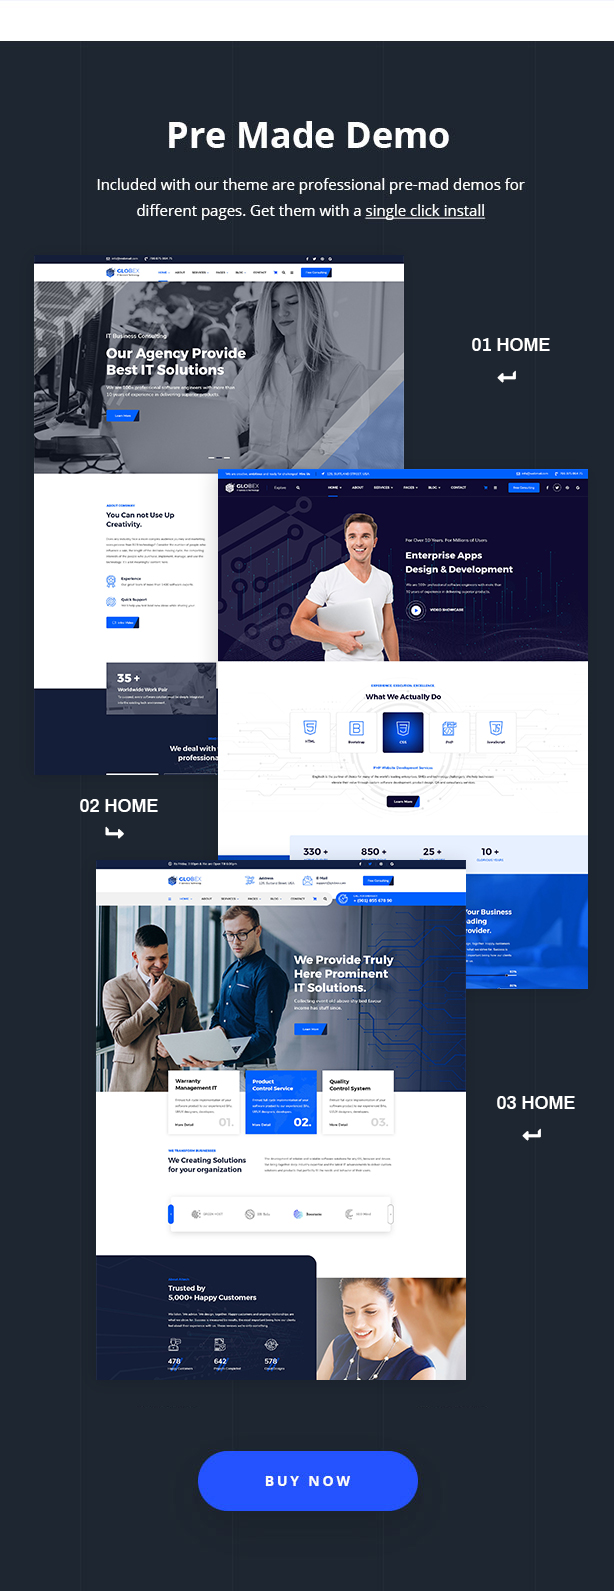 Globex - IT Solutions & Services WordPress Theme - 8